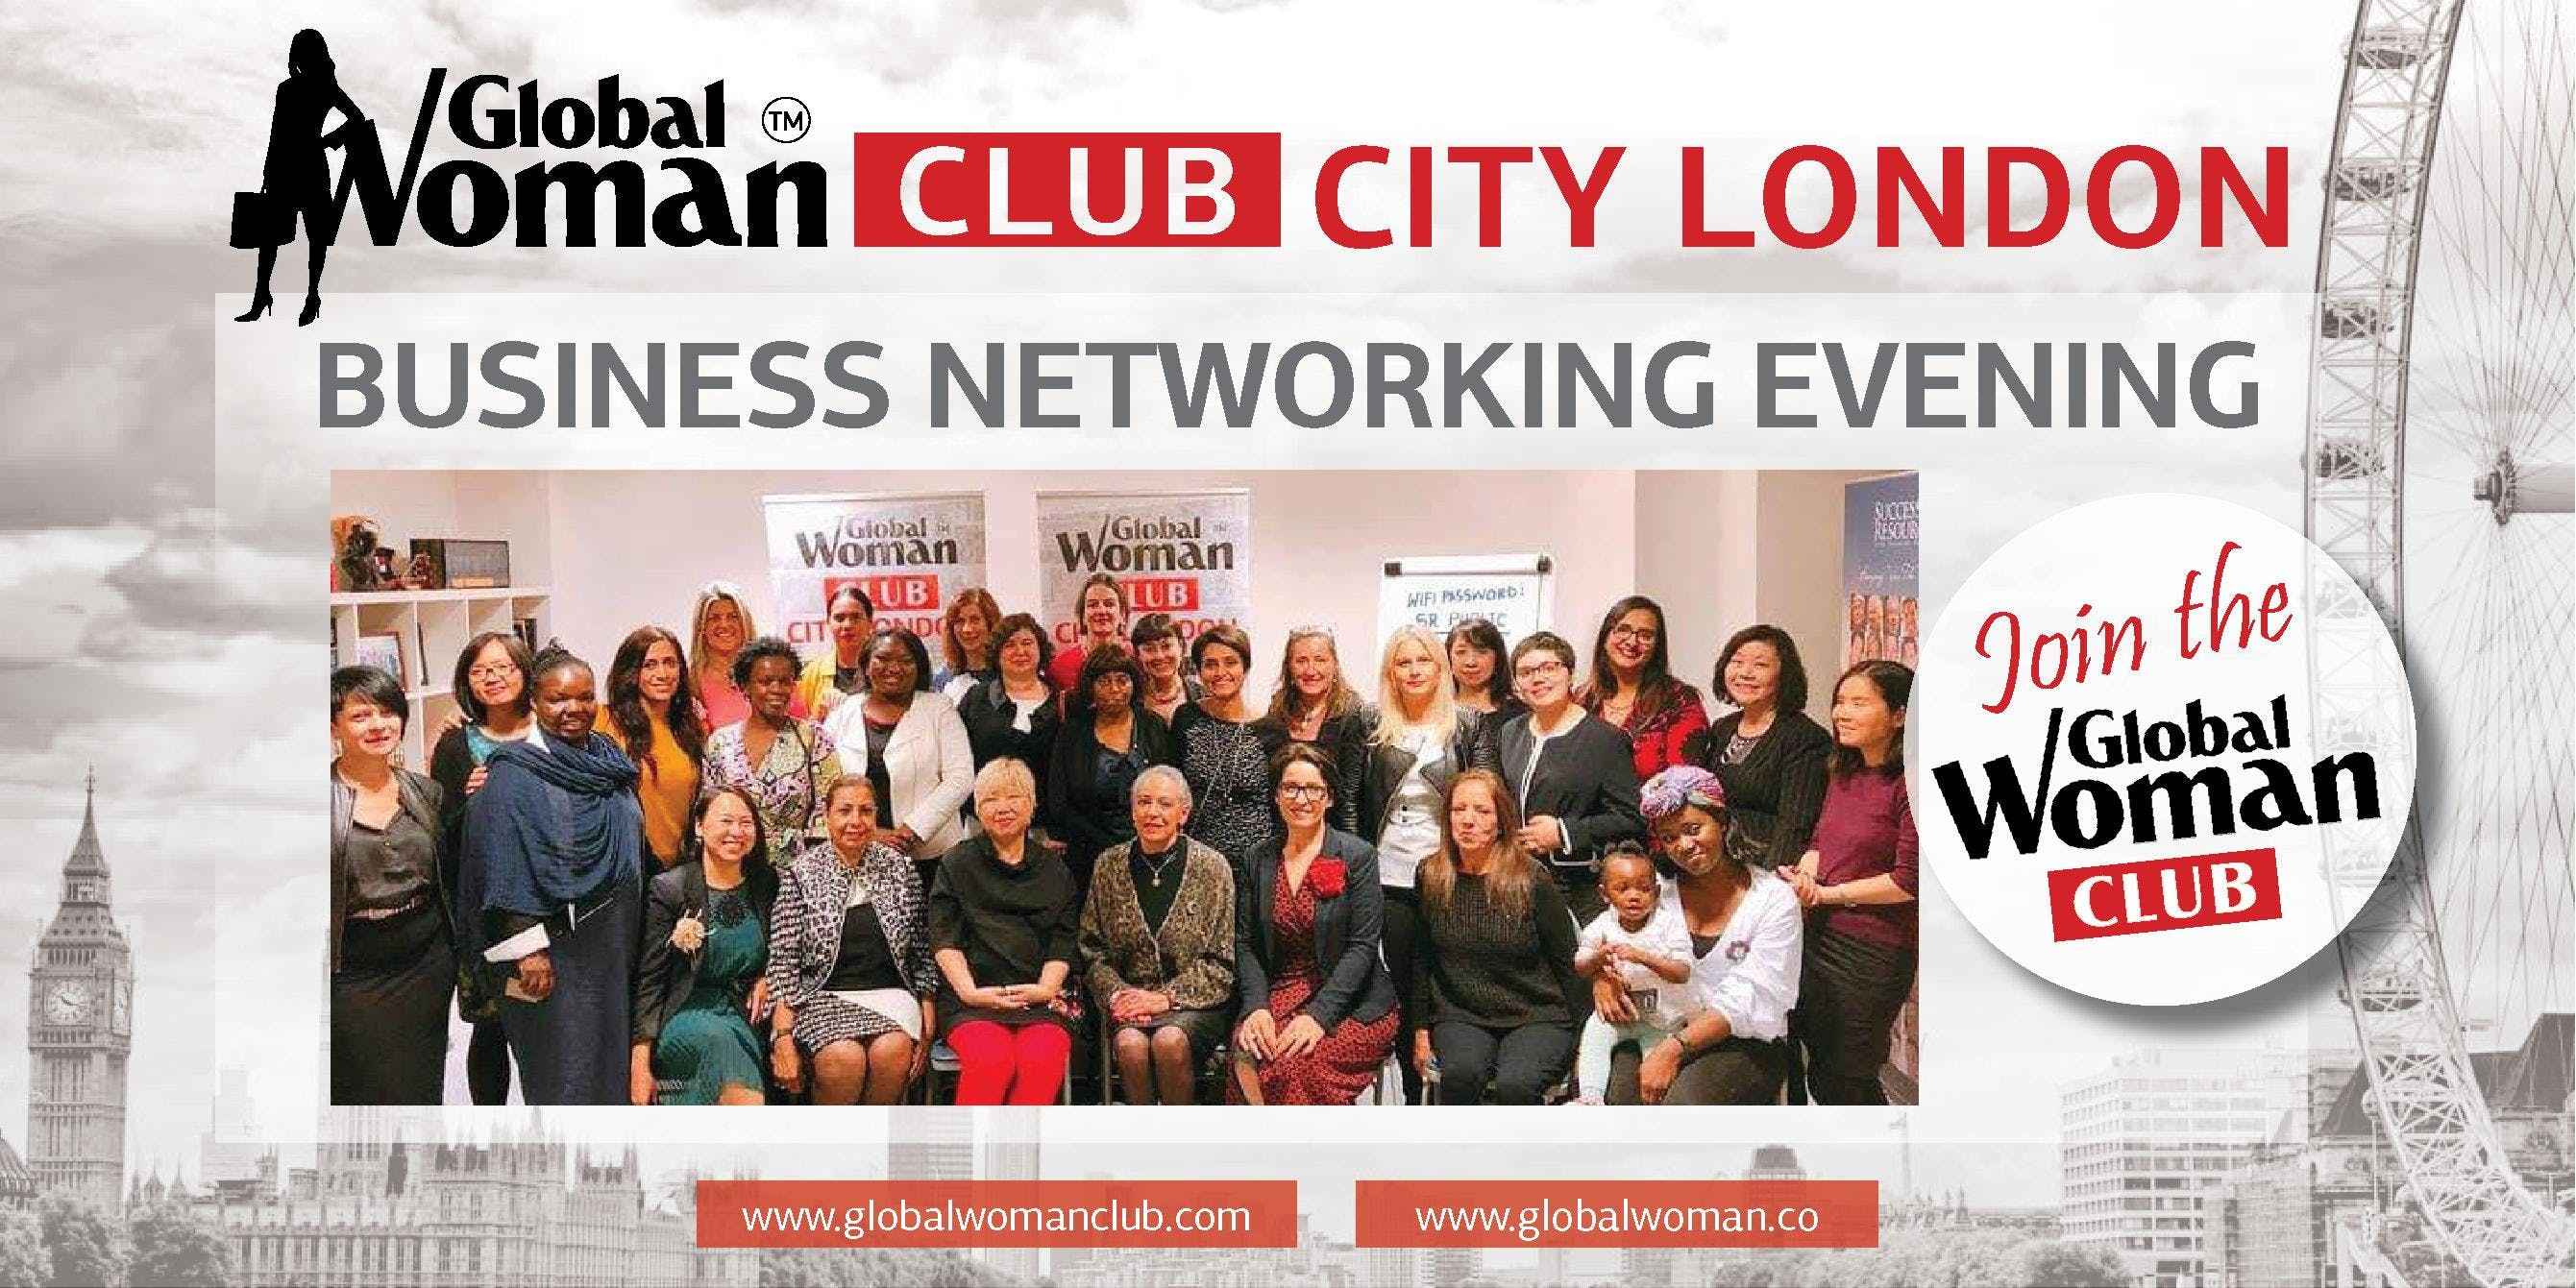 GLOBAL WOMAN CLUB CITY LONDON - BUSINESS NETWORKING EVENING - JANUARY